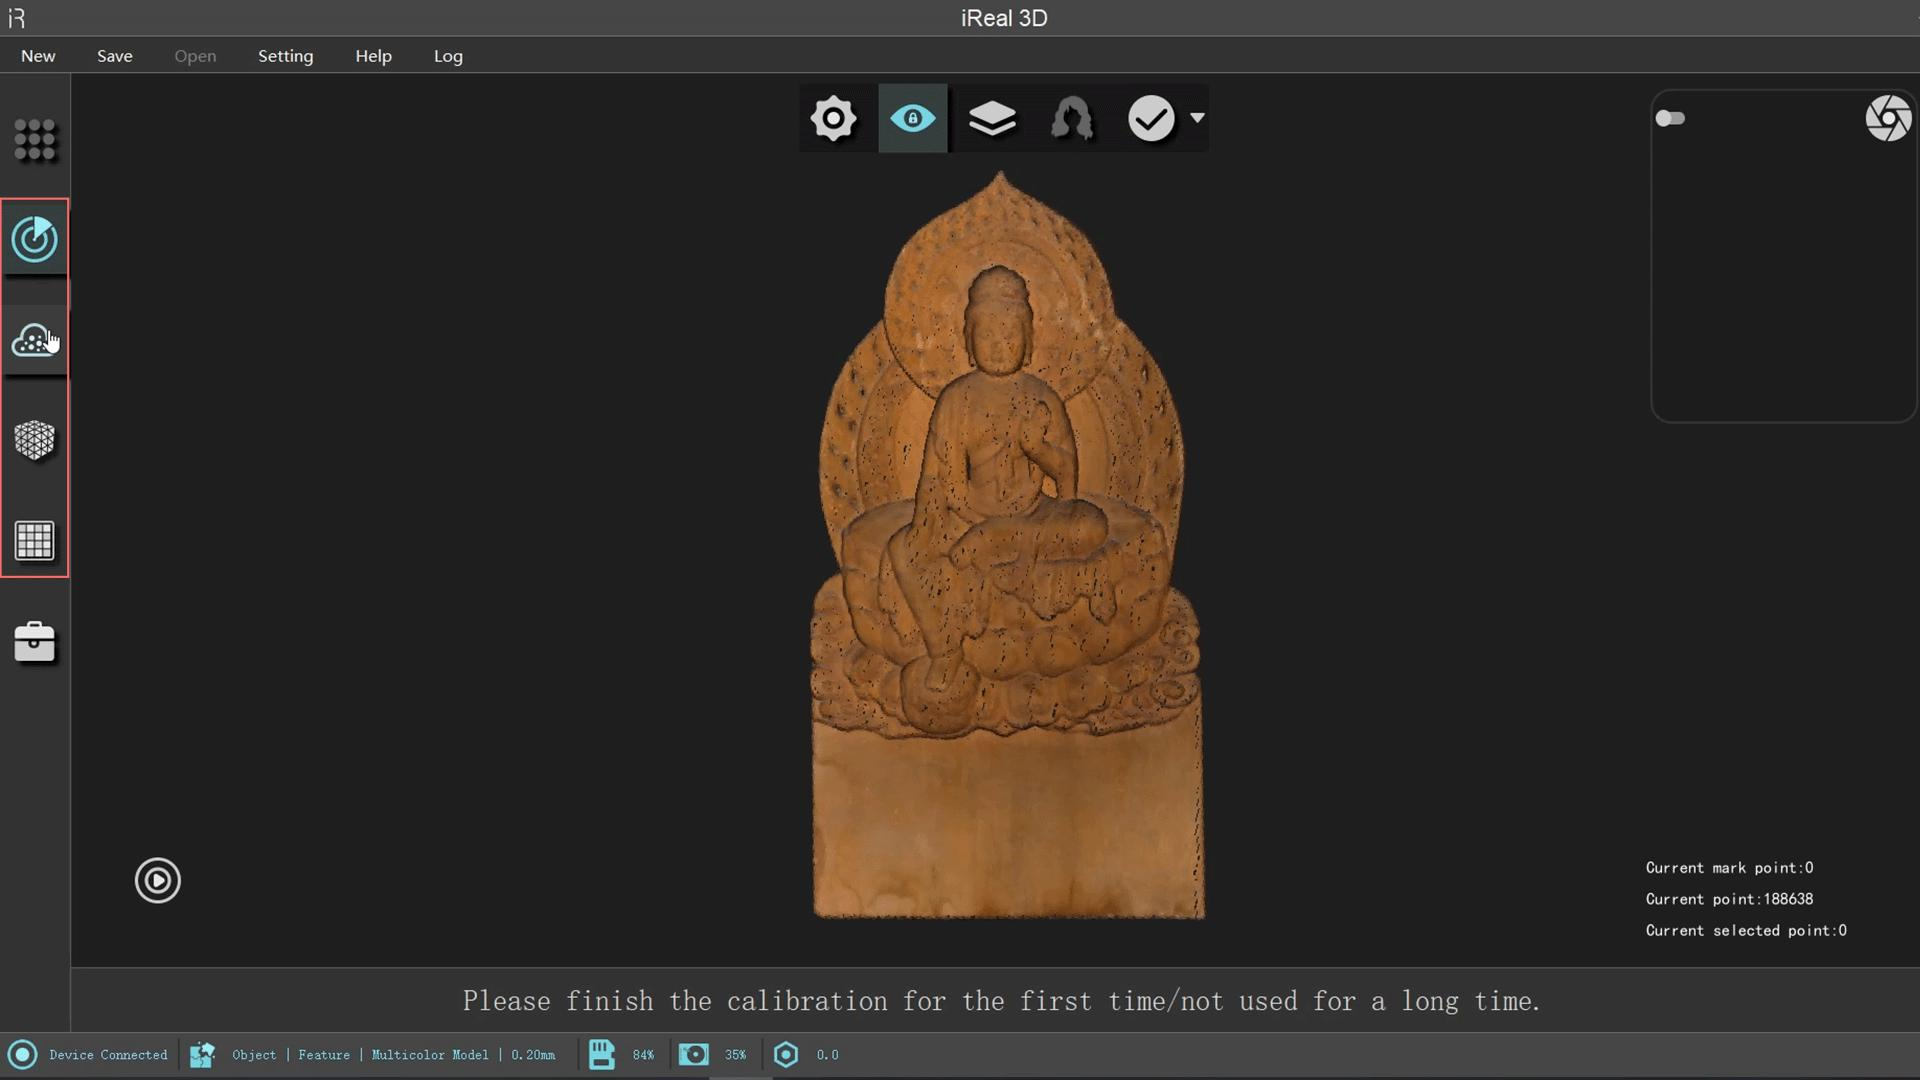 Scantech Releases iReal 3D V3.0 to Empower Smart 3D Scanning 3